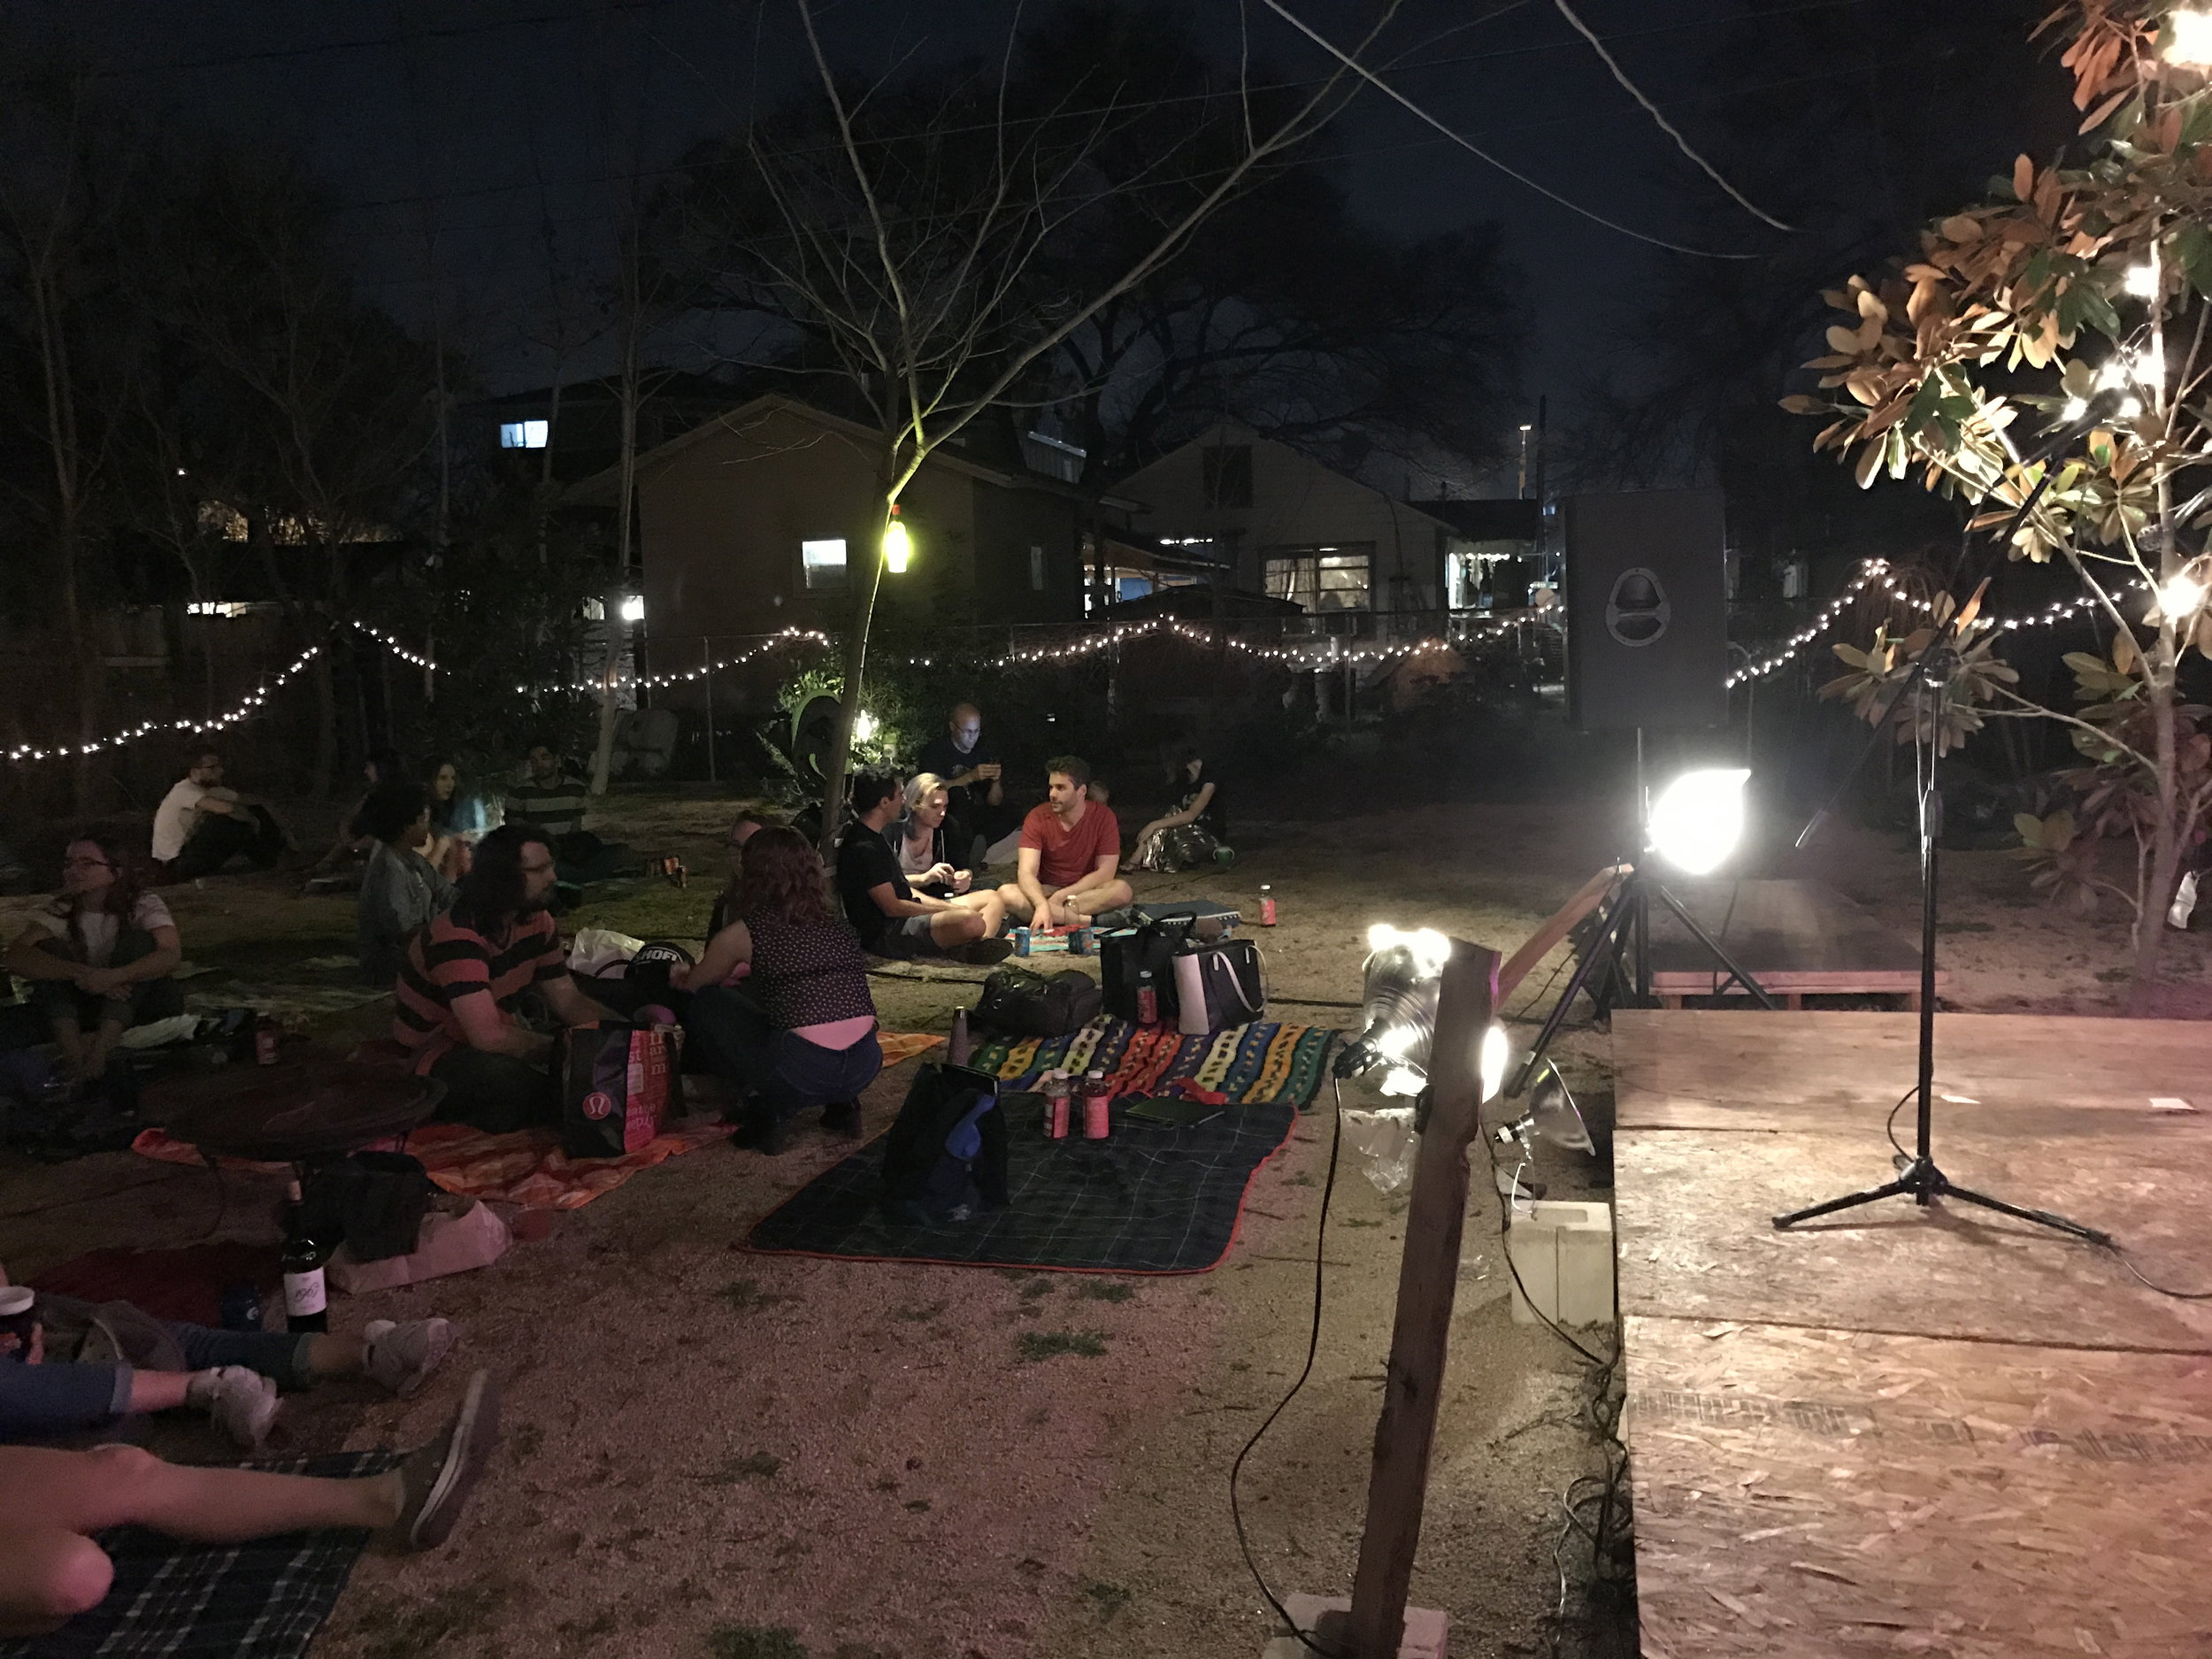 A local storytelling event held in someones back yard was well attended.